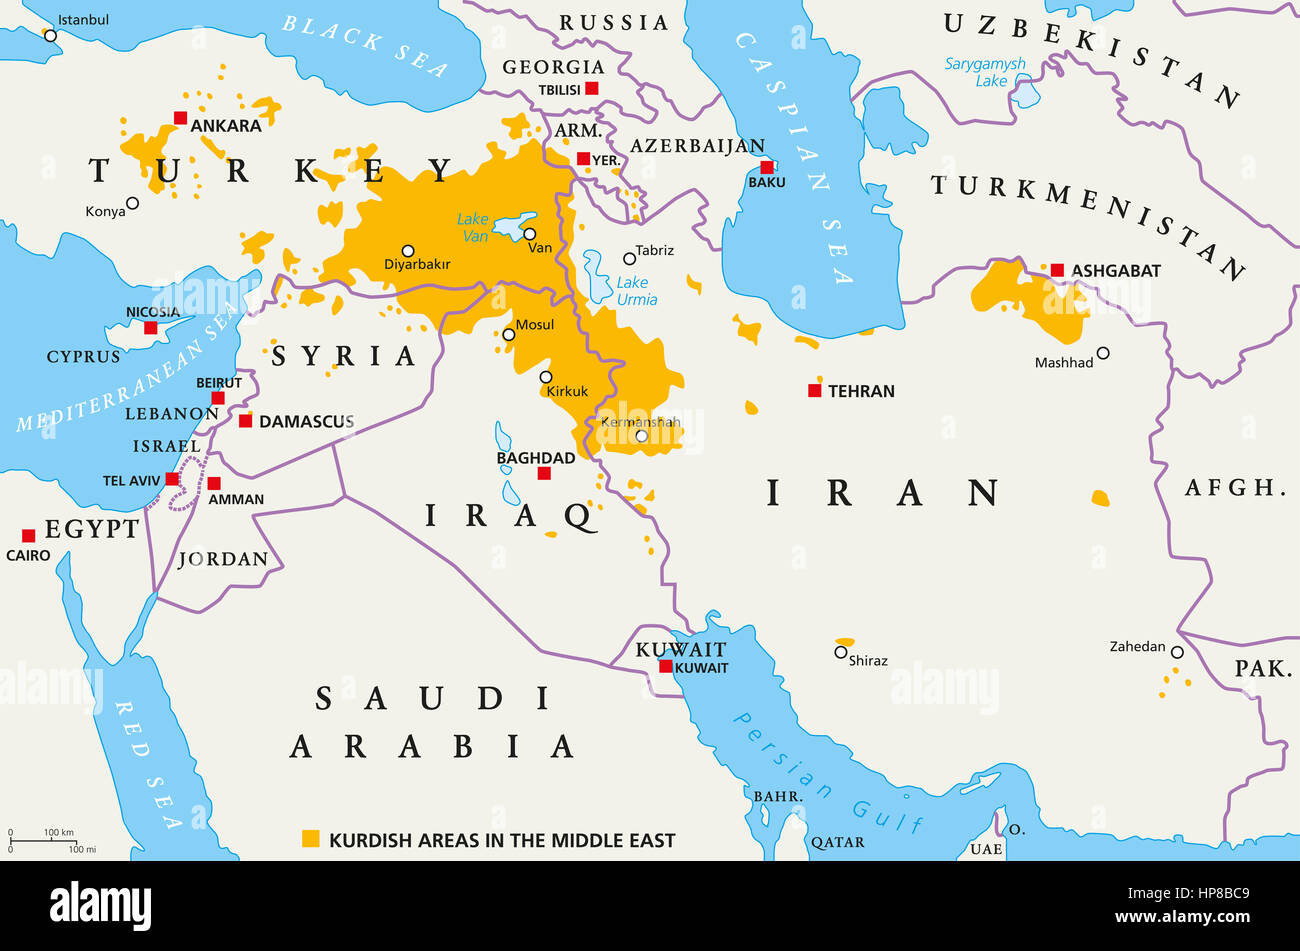 Kurdish areas in the Middle East political map Countries with